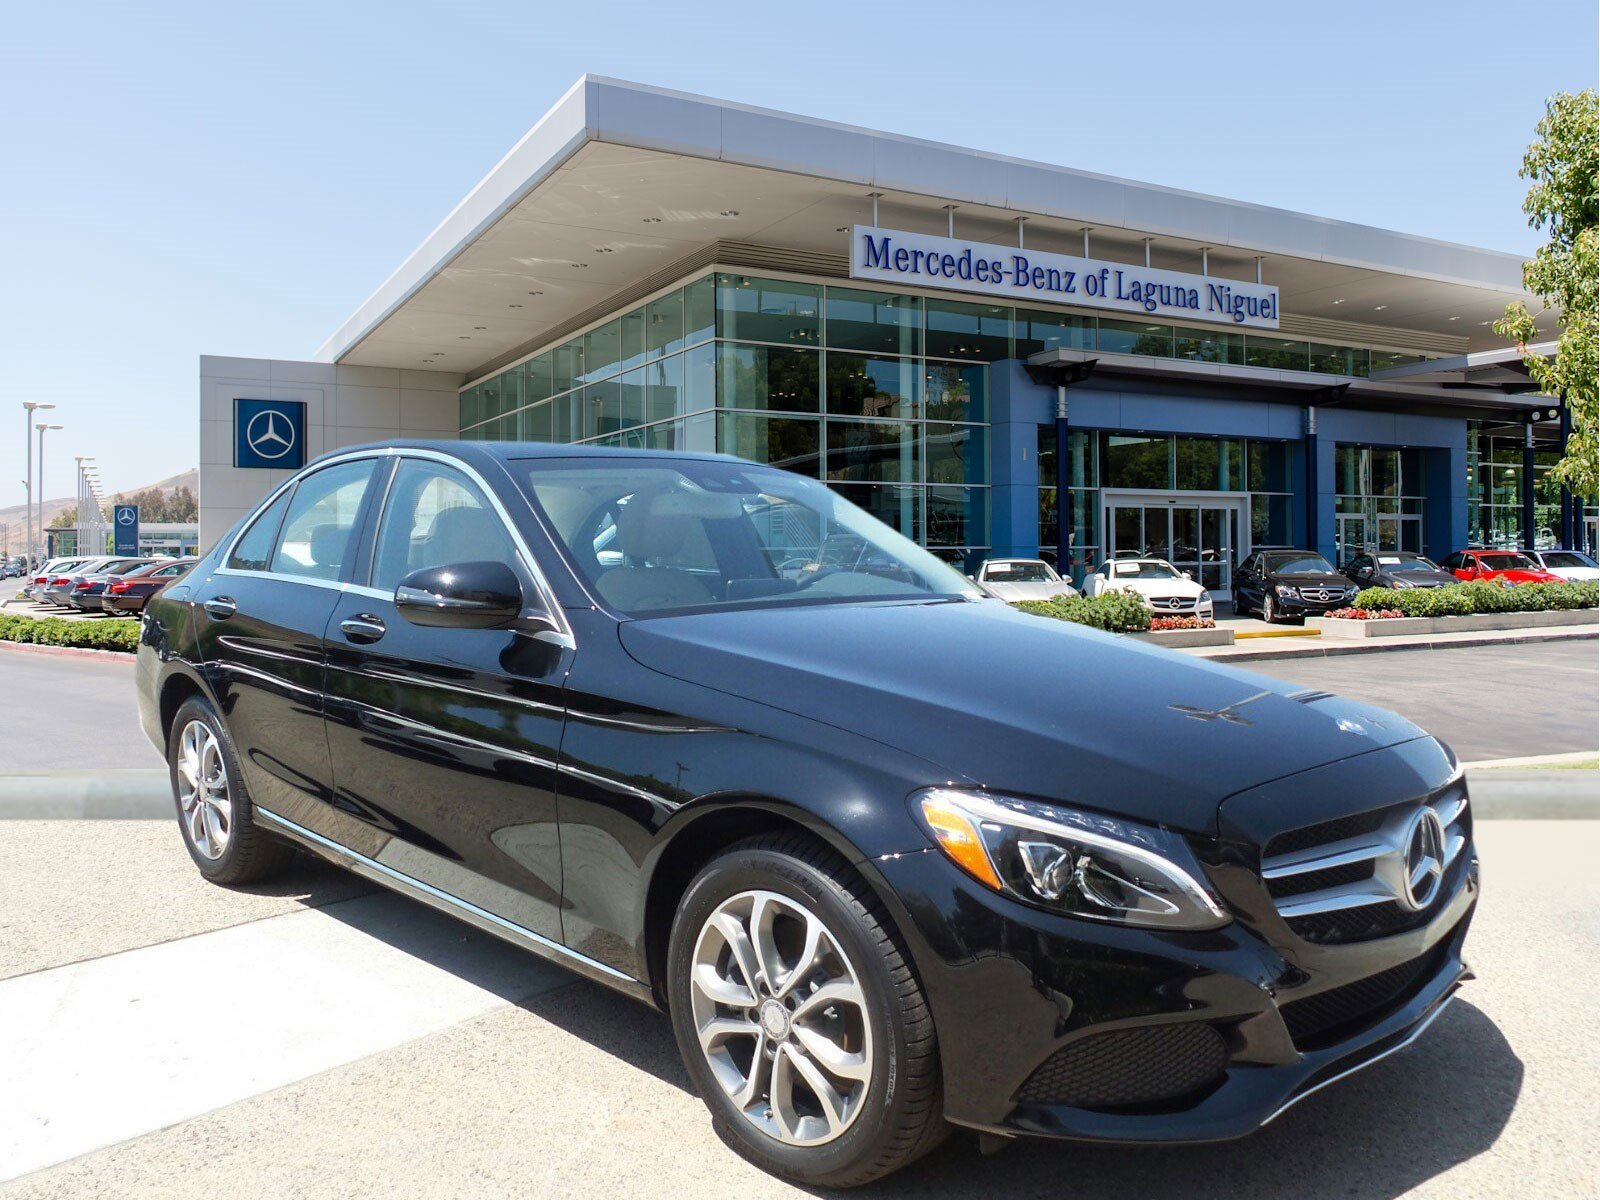 c300 sedan in laguna niguel a33286 mercedes benz of laguna niguel. Cars Review. Best American Auto & Cars Review